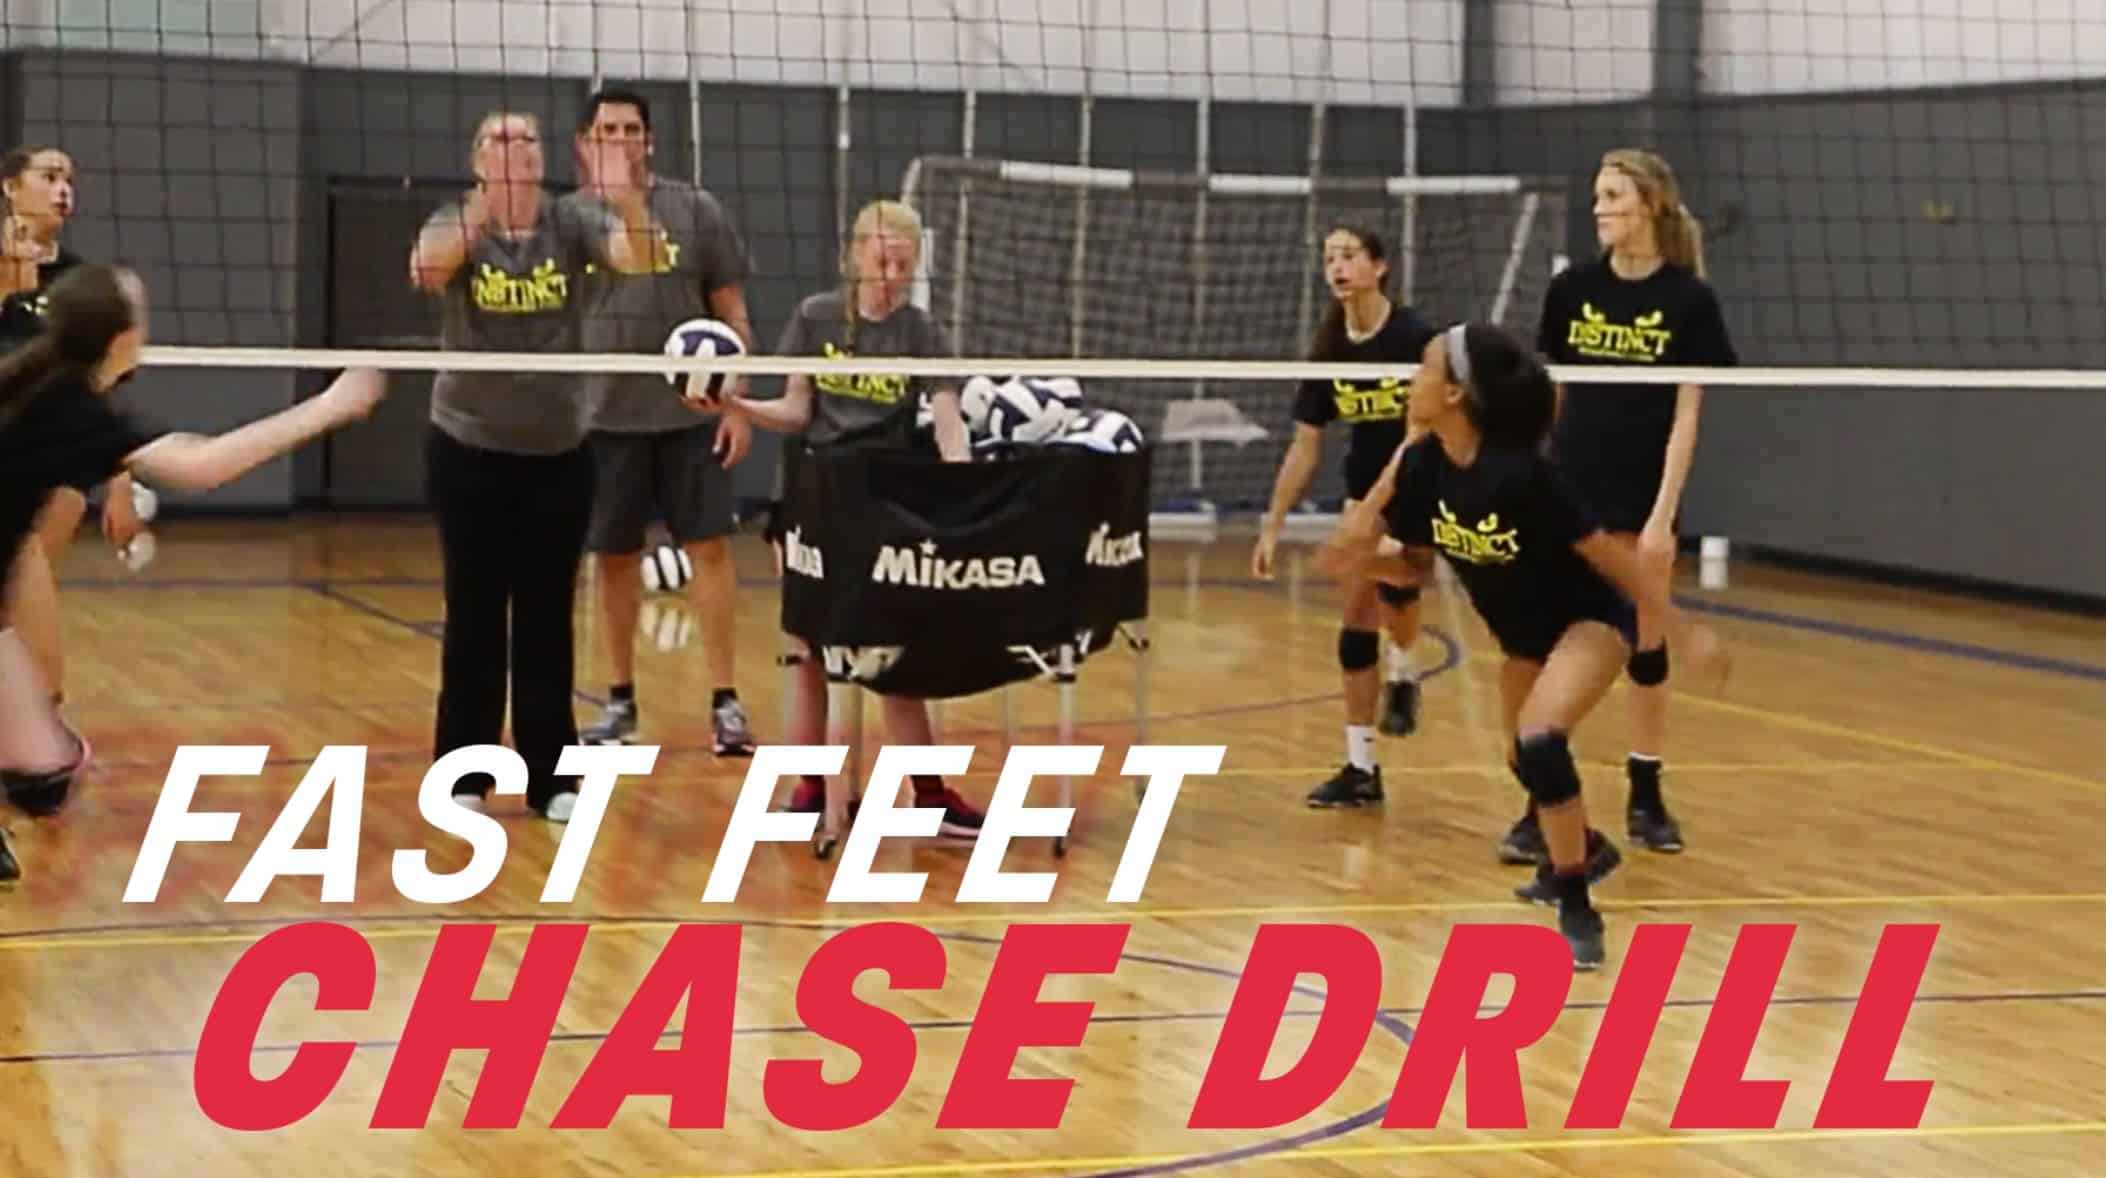 Encourage Fast Feet With Chase Drill